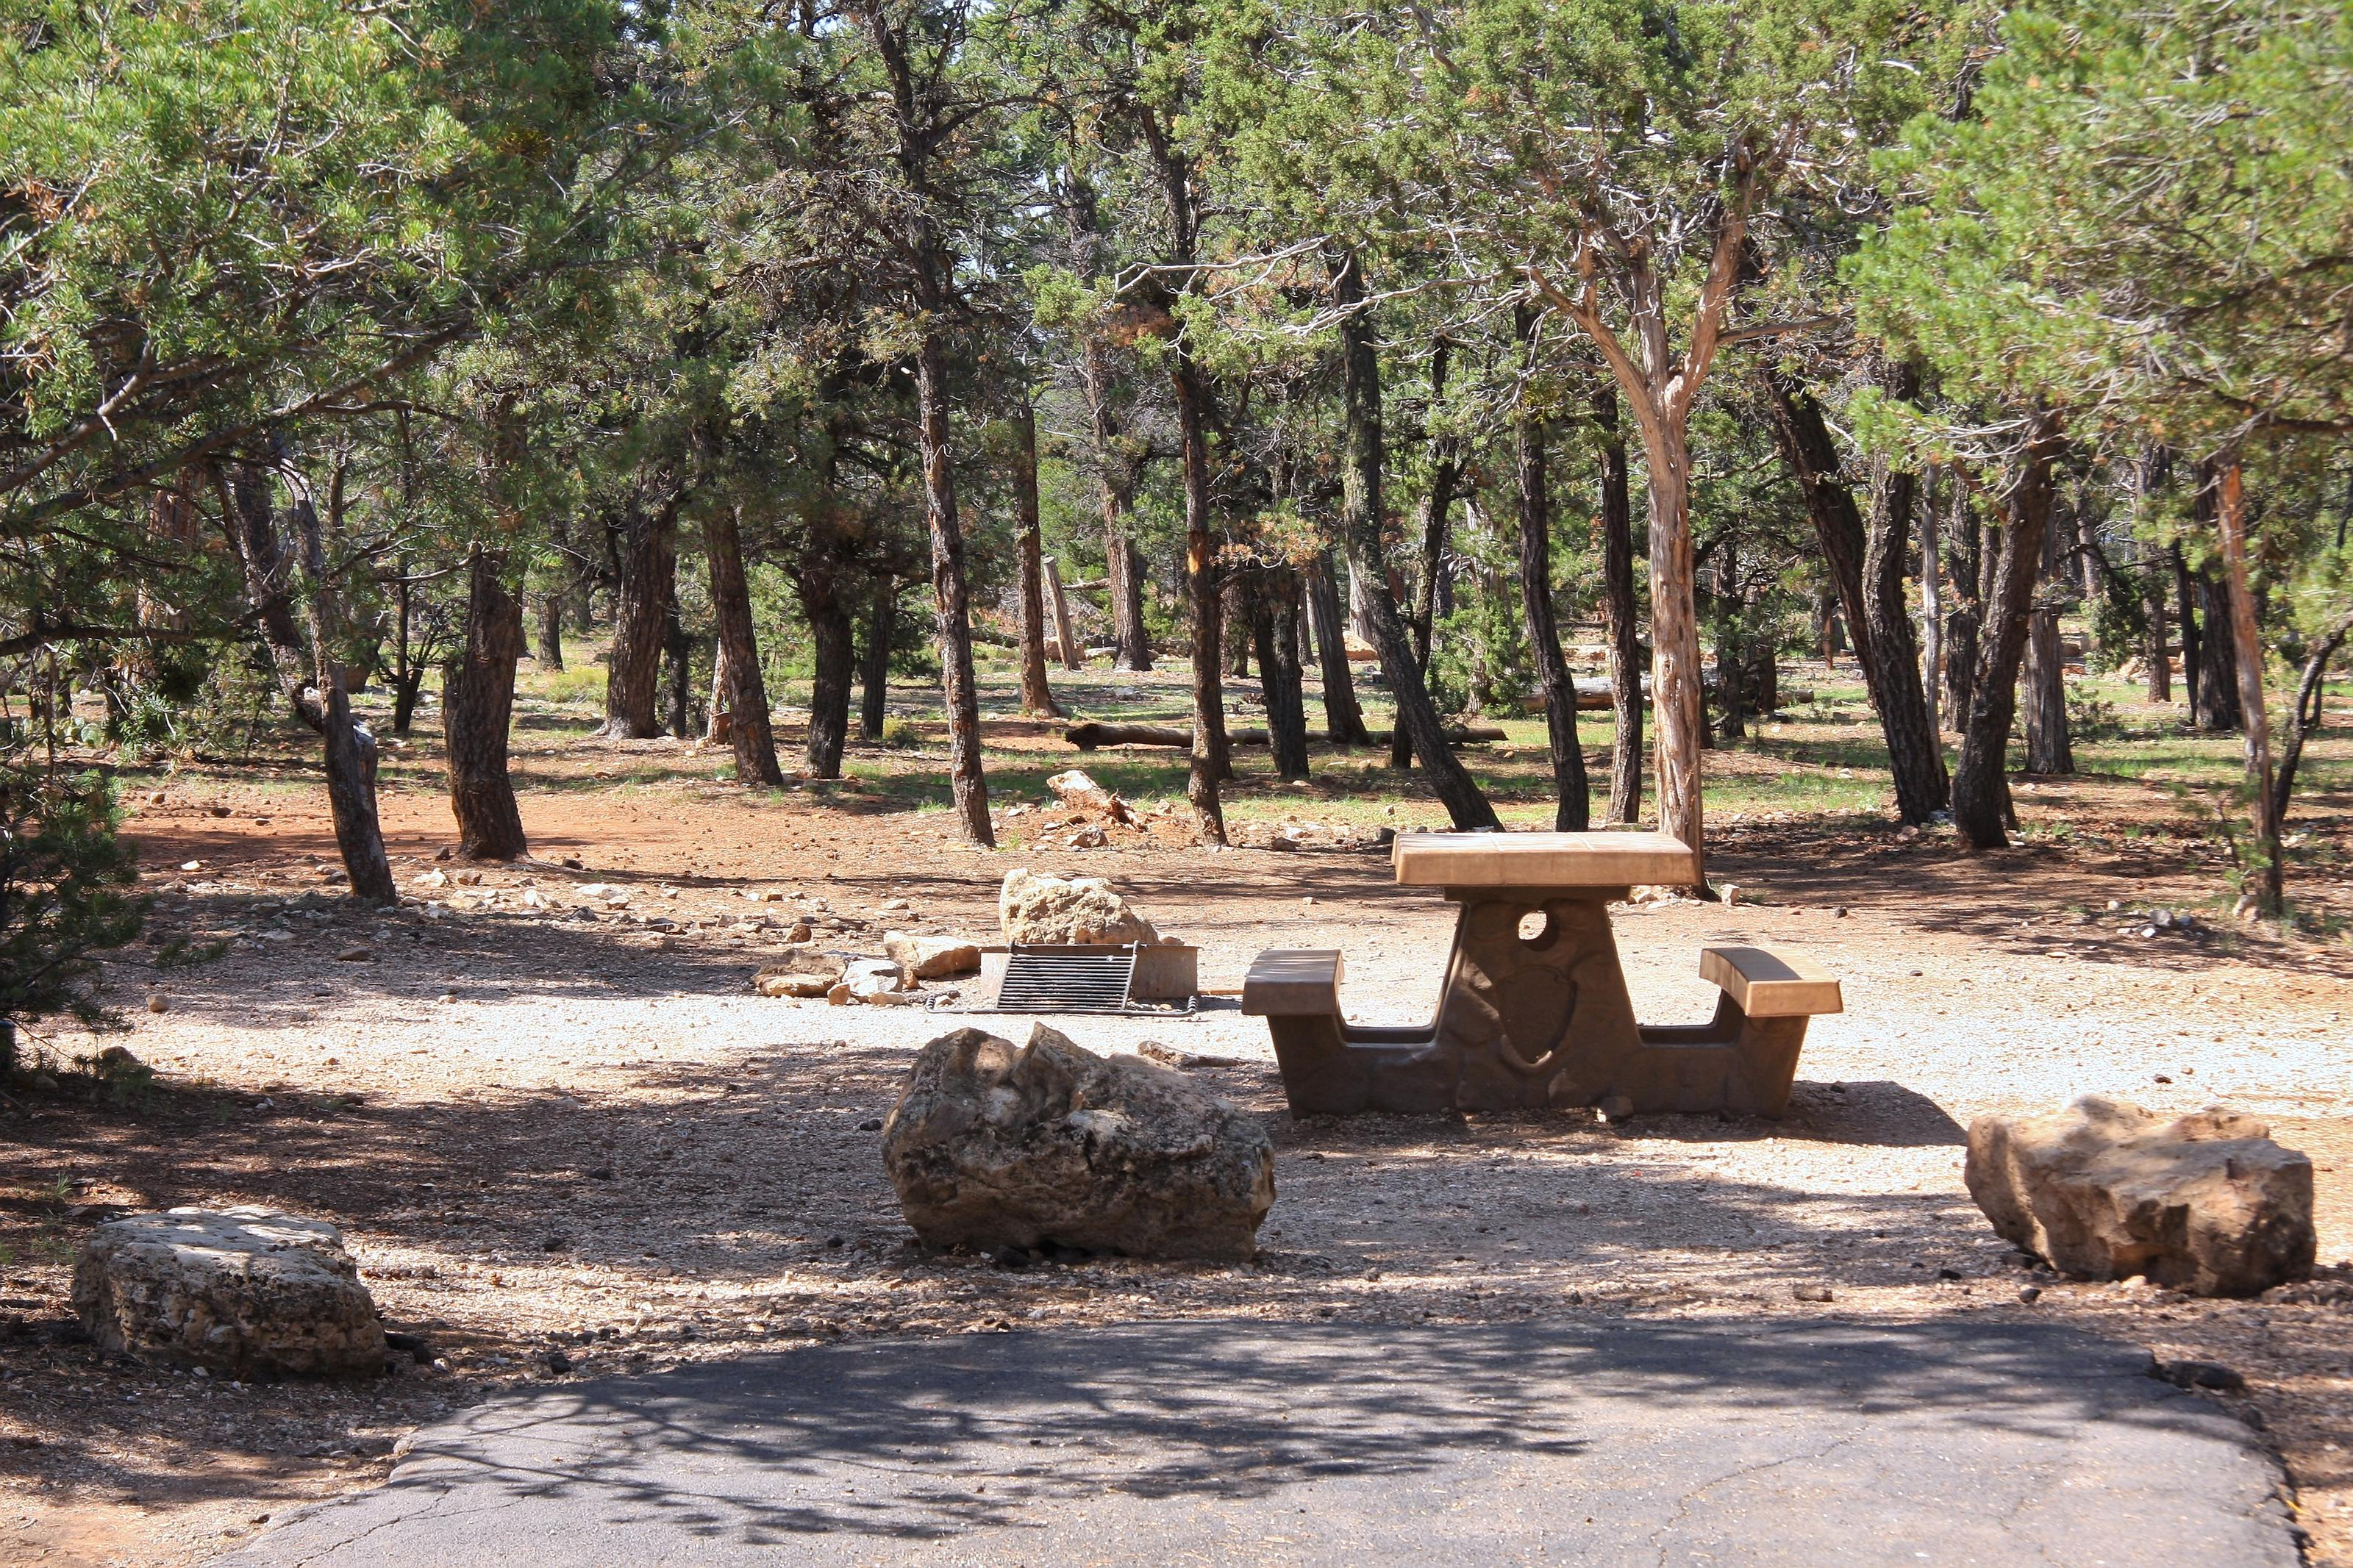 Picnic table, fire pit, and parking spot, Mather CampgroundPicnic table, fire pit, and parking spot for Maple Loop 190, Mather Campground